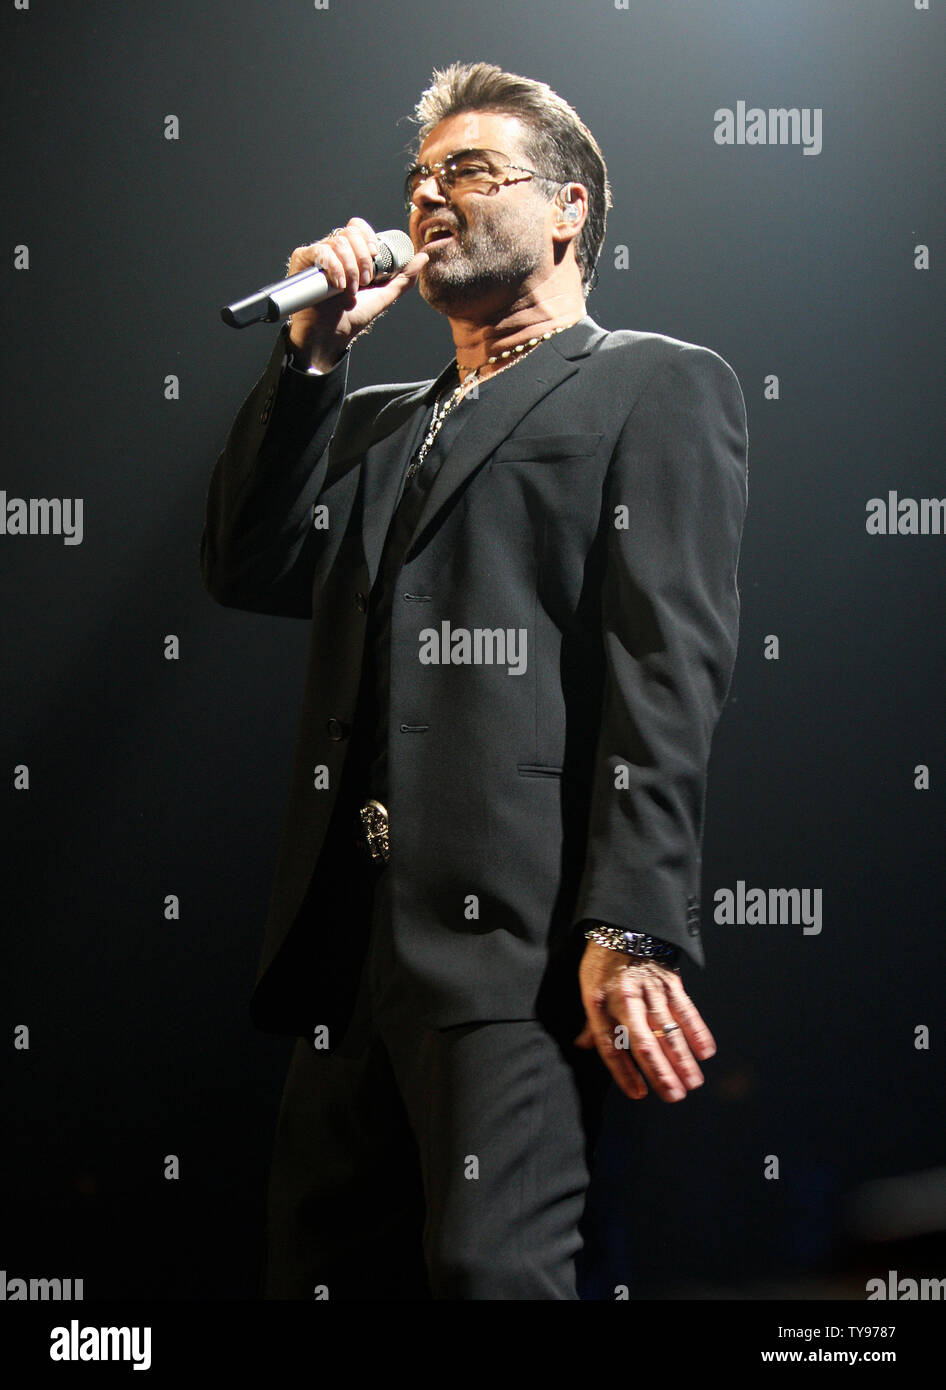 George Michael performs at the MGM Grand arena in Las Vegas